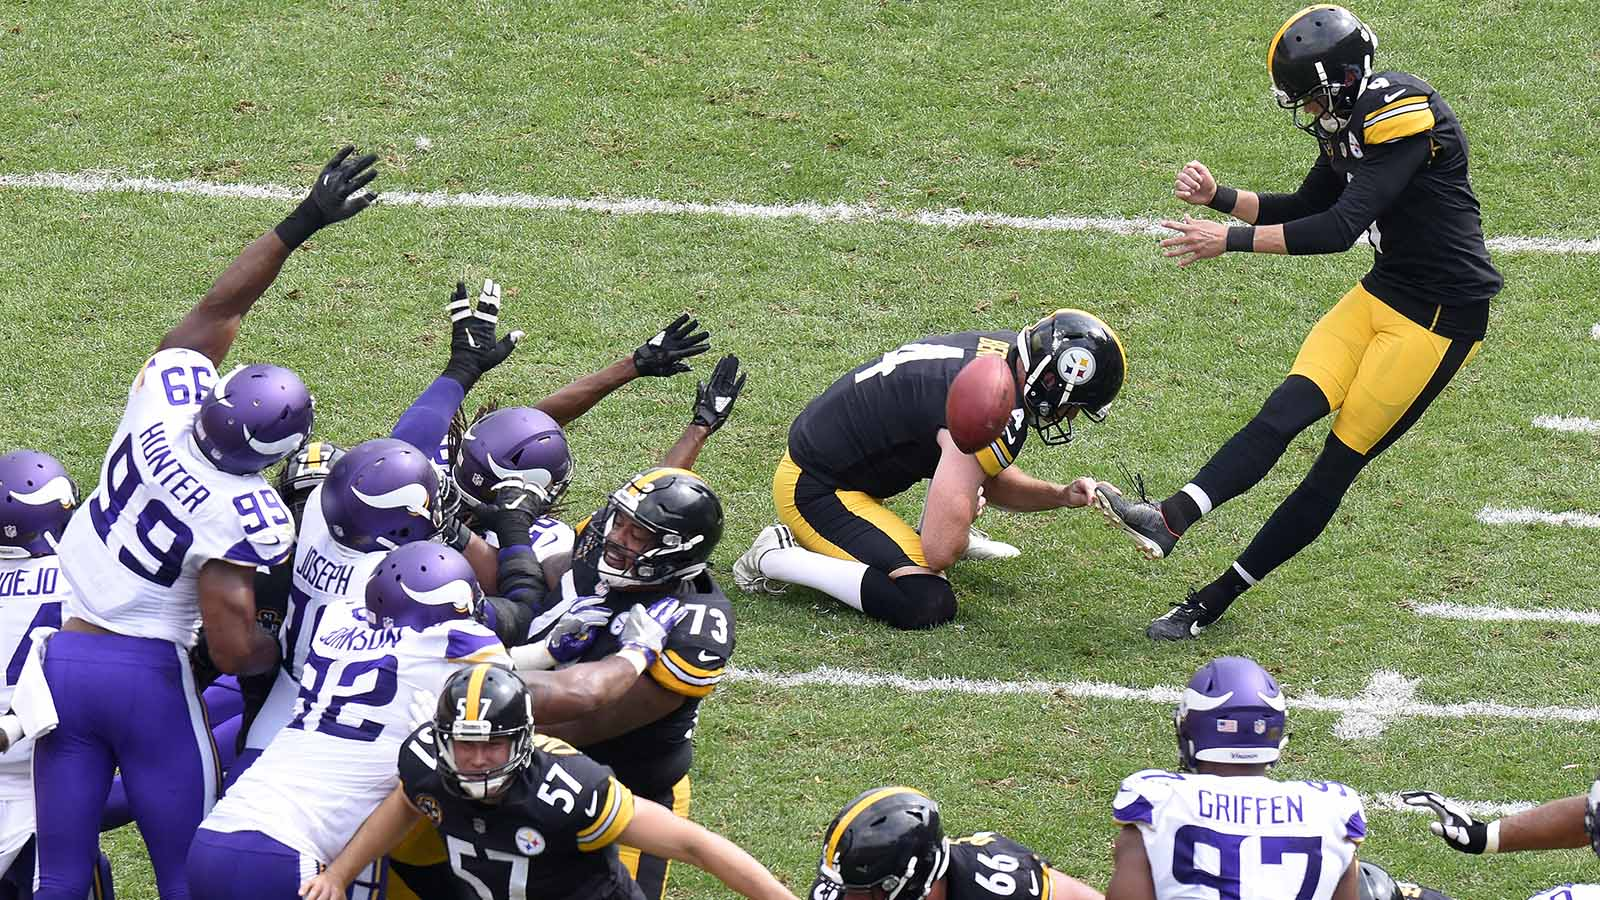 Pittsburgh Steelers kicker Chris Boswell (9) kicks a field goal out of the hold by Jordan Berry (4) during the second half of an NFL football game against the Minnesota Vikings in Pittsburgh, Sunday, Sept. 17, 2017. (AP Photo/Don Wright)